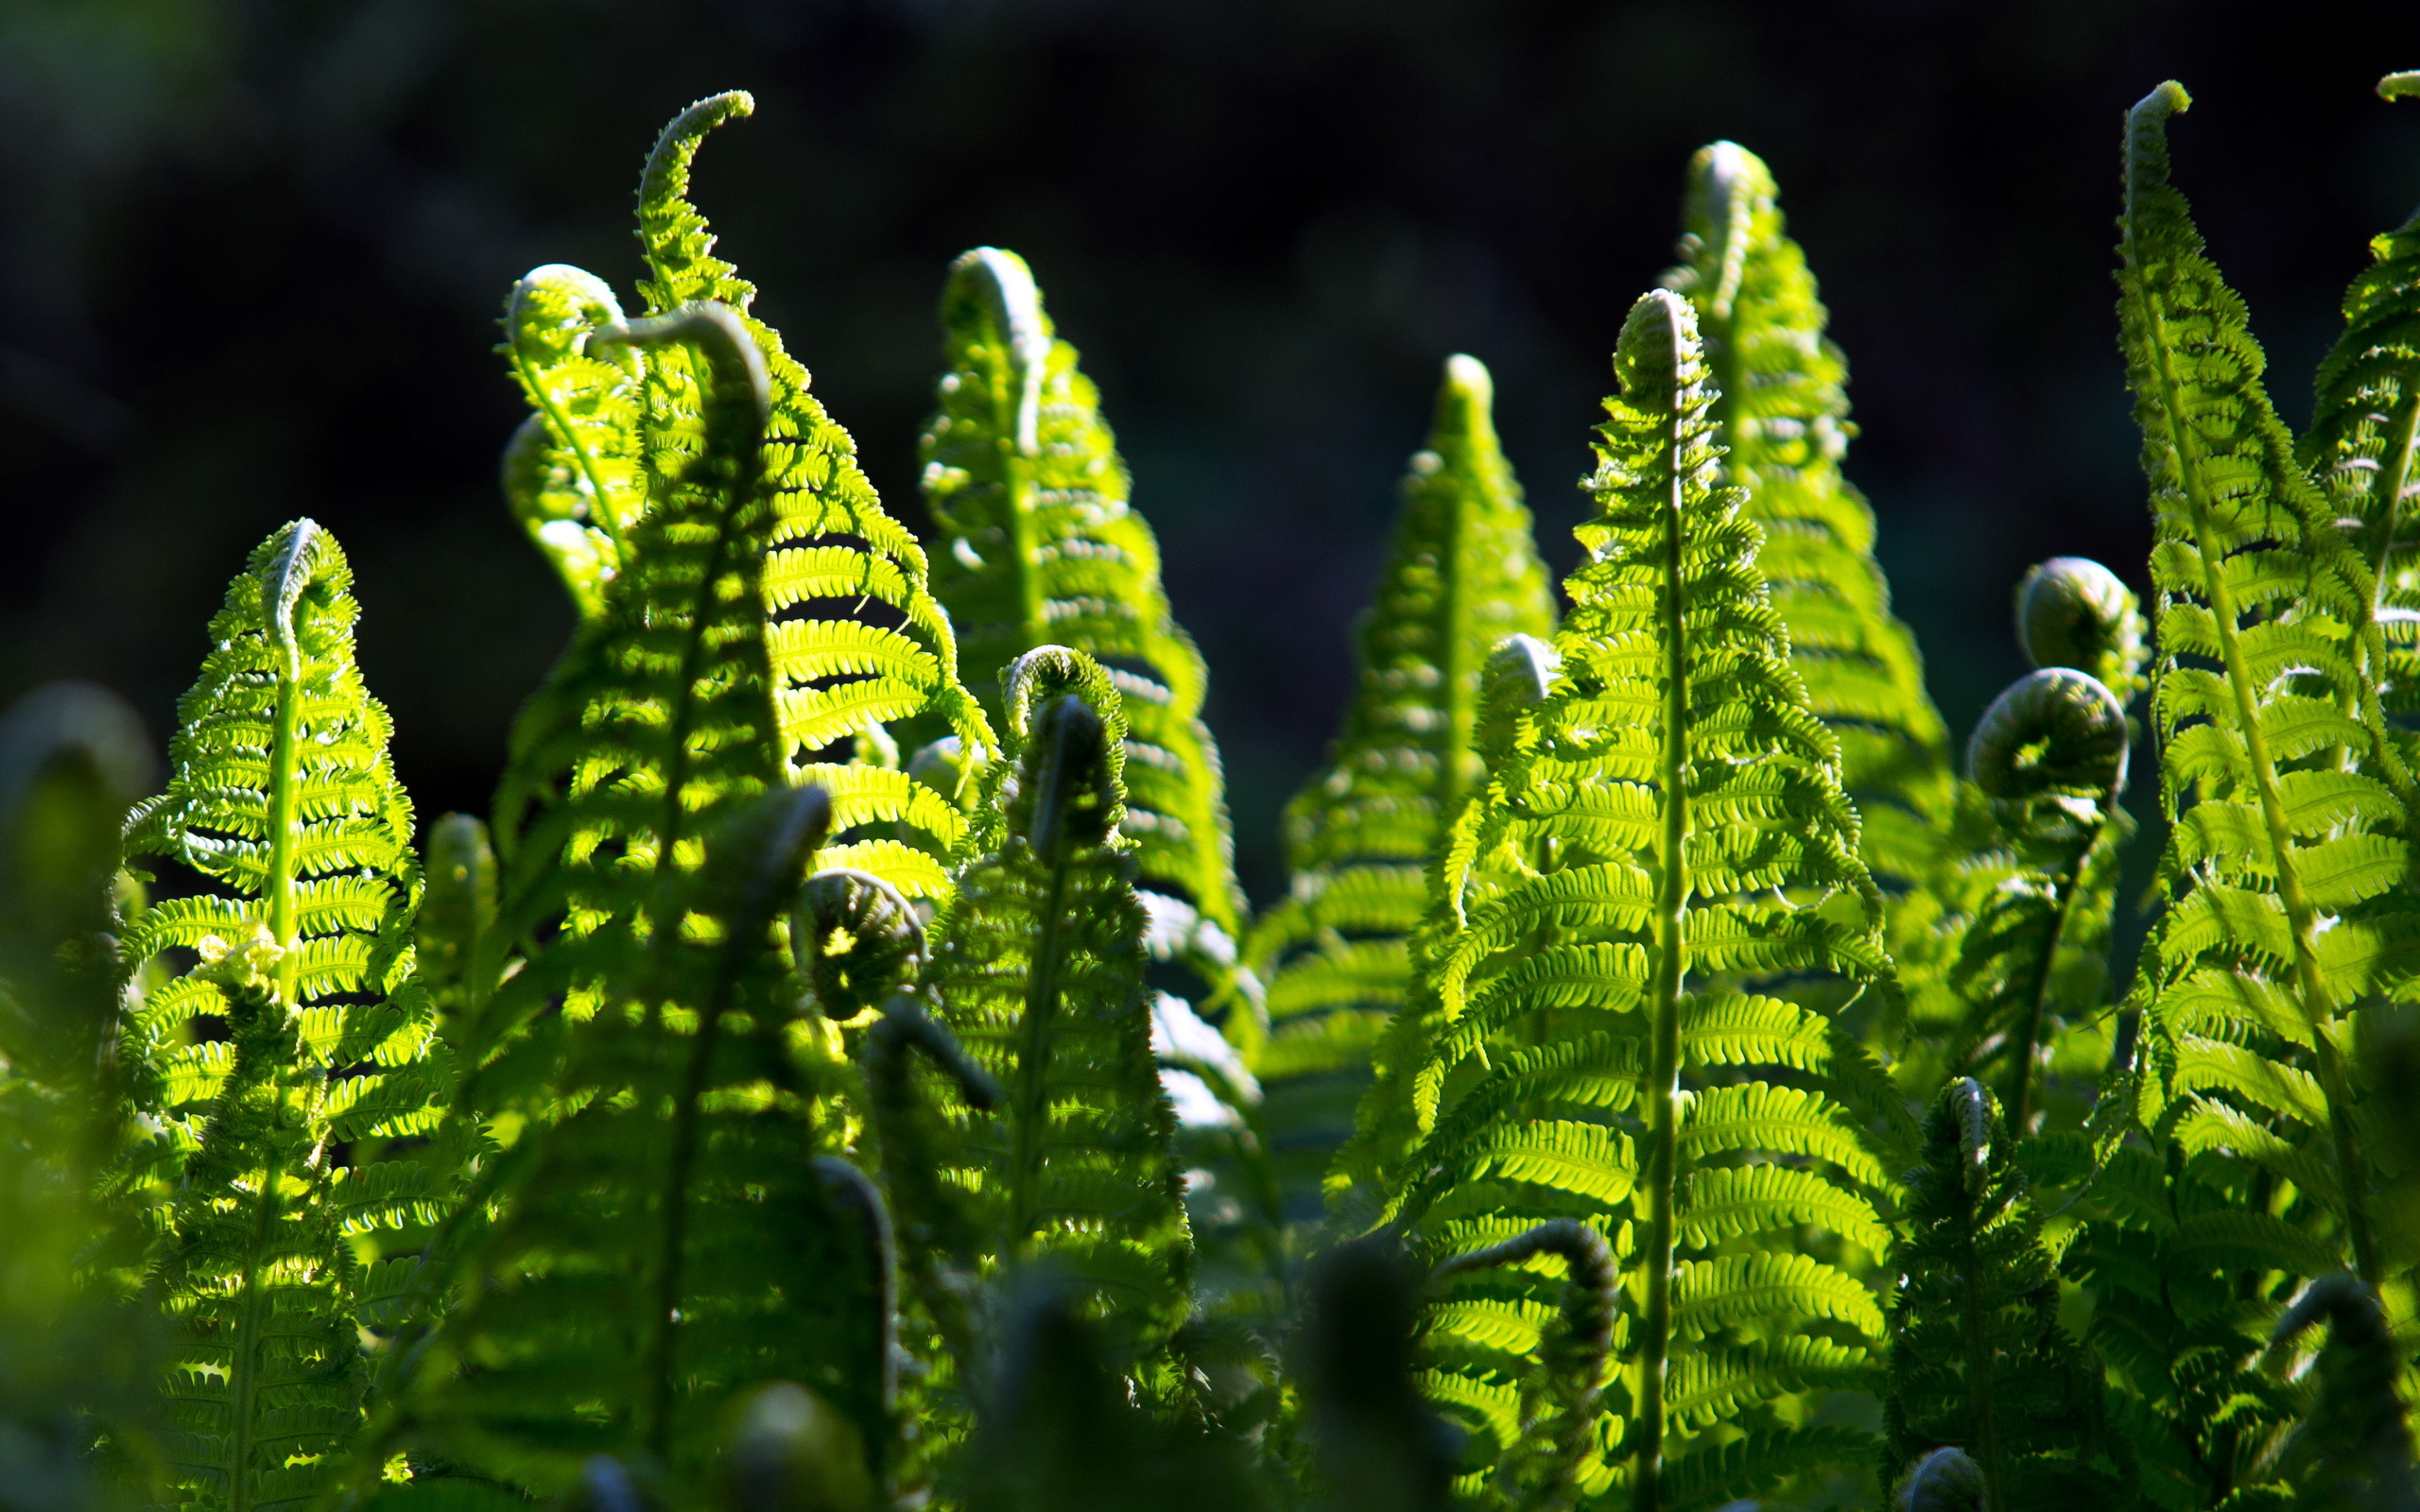 Hd 3d Wallpapers 1080p Widescreen Fern Full Hd Wallpaper And Background Image 2560x1600